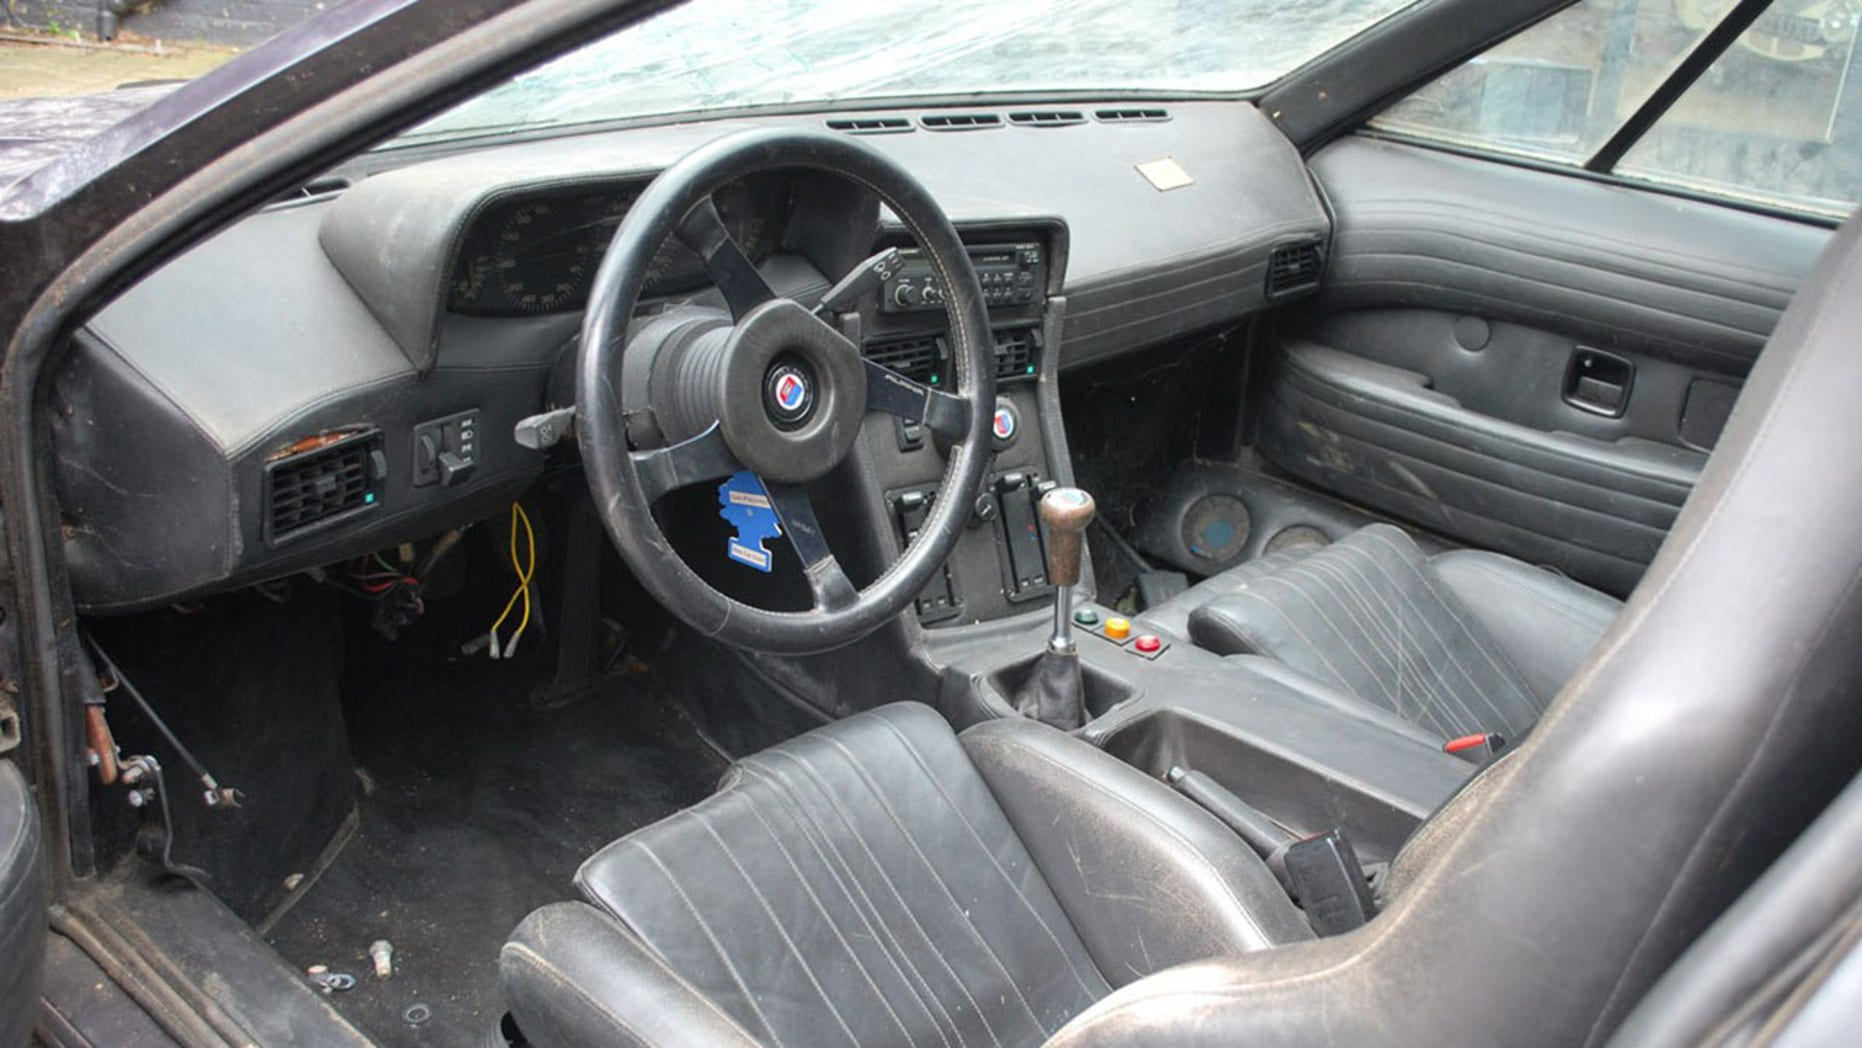 Legendary Lost BMW M1 interior